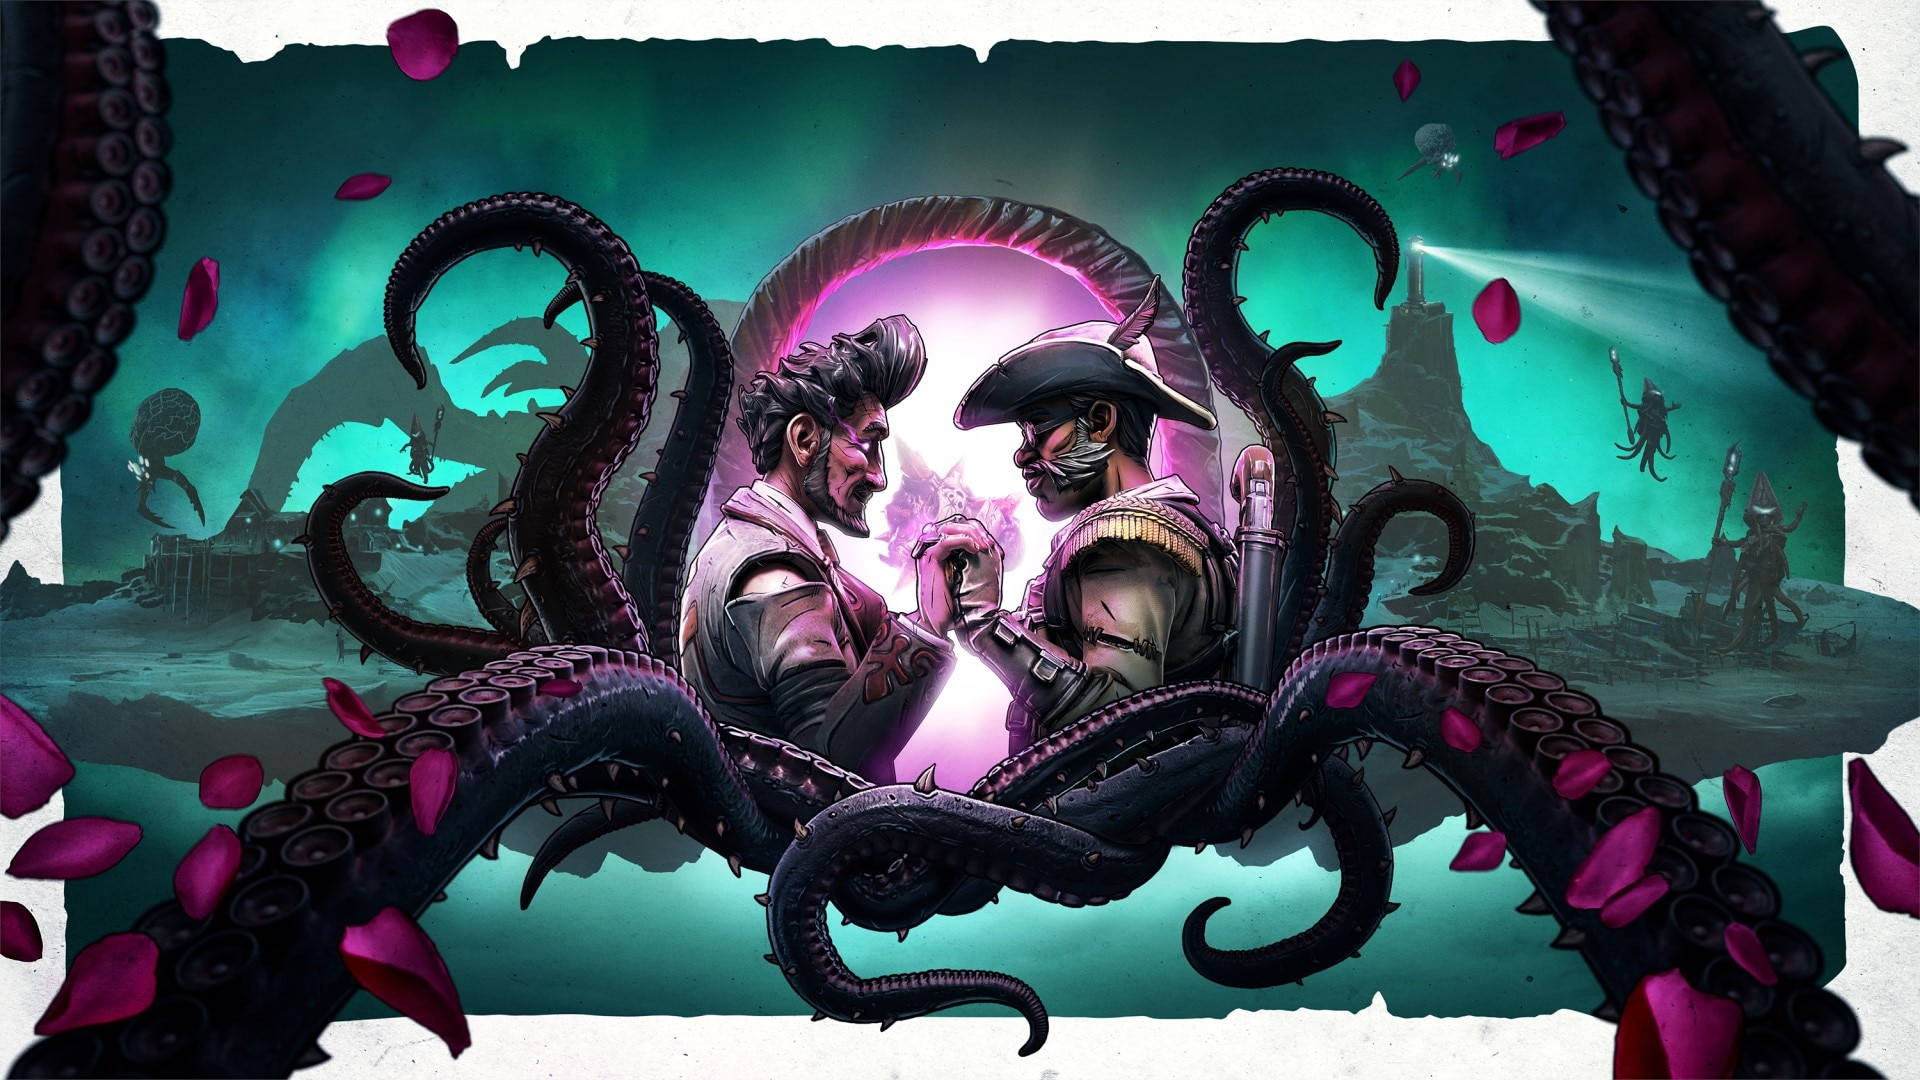 Guns love and tentacles - NEW BORDERLANDS 3 DLC GUNS, LOVE, AND TENTACLES FEATURES MOST EXPLOSIVE WEDDING IN ALL THE GALAXY